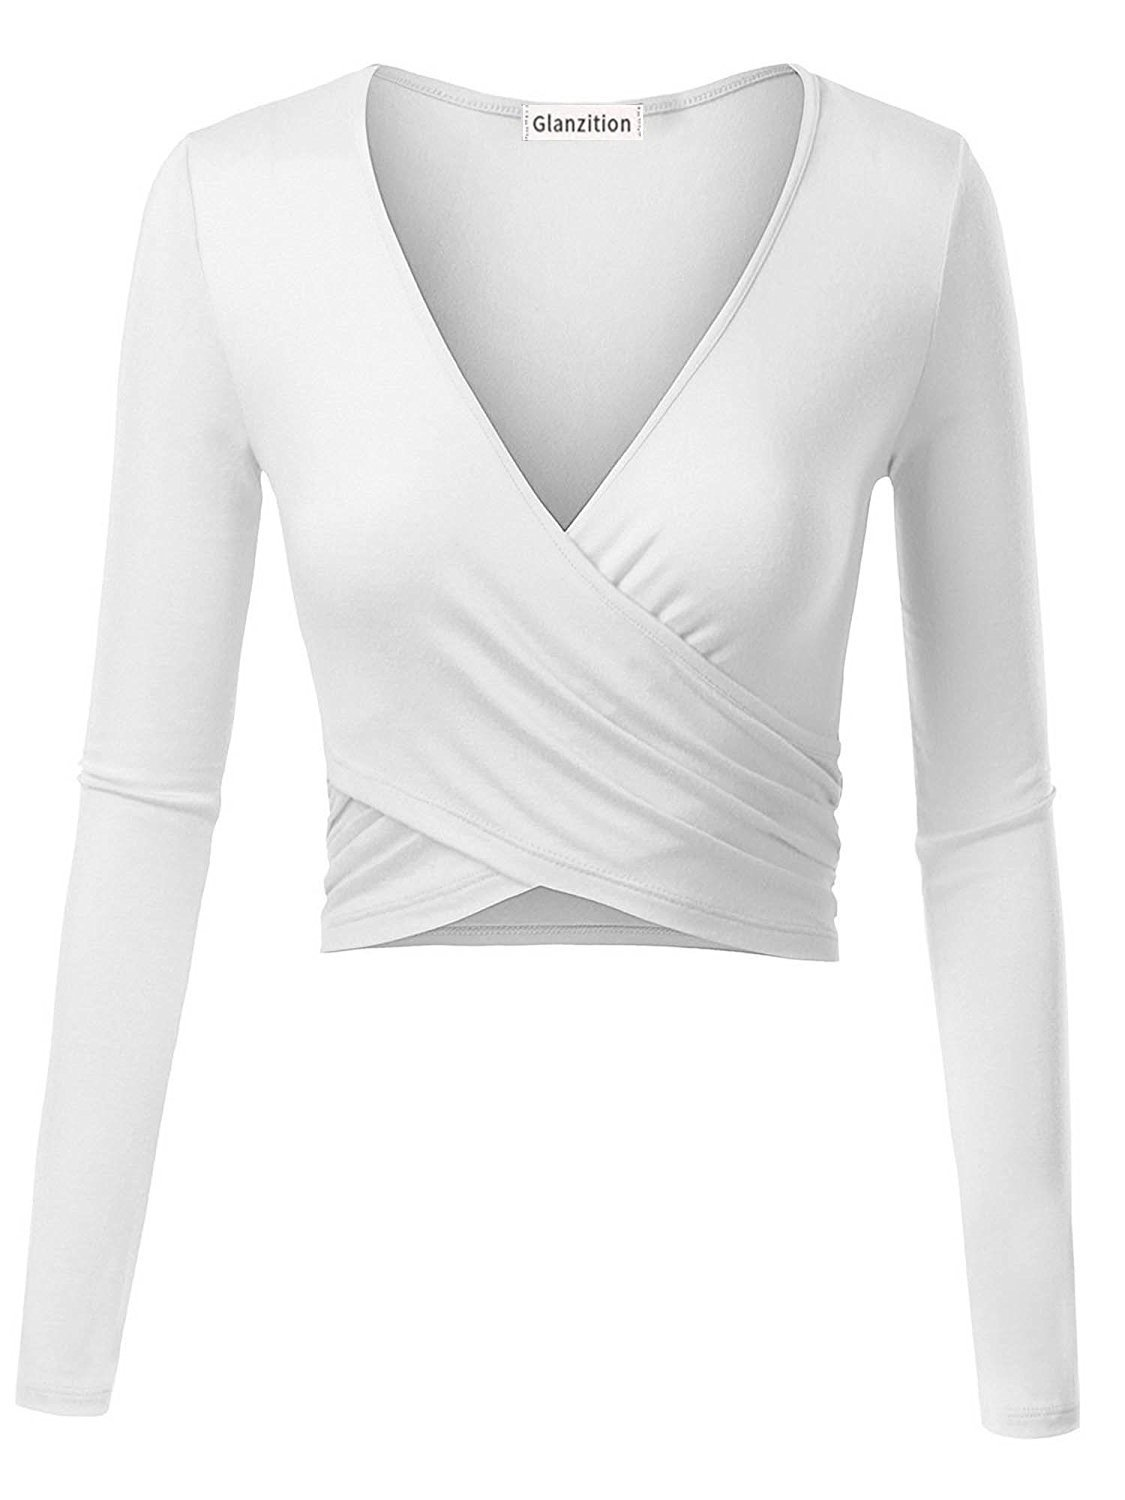 Glanzition Womens Basic Short Sleeve Deep V Neck Crop Tops Cute White M